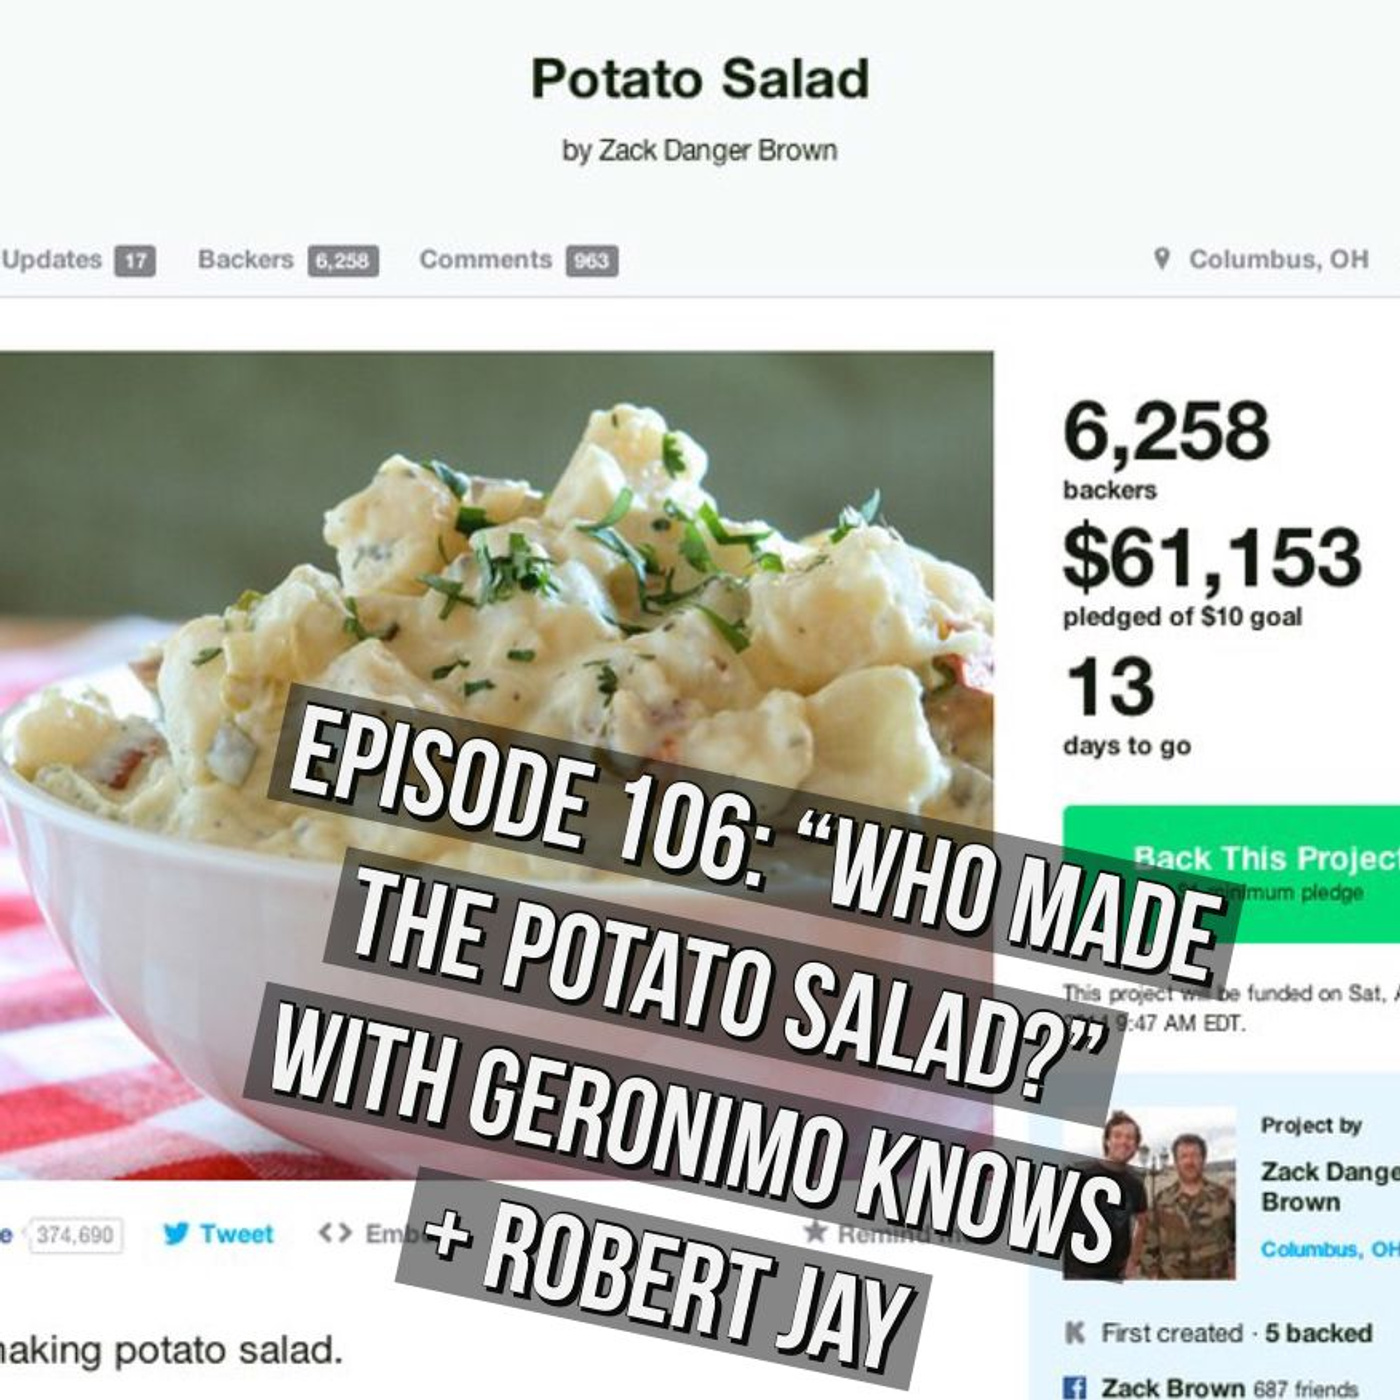 "Episode 106 - ""Who Made The Potato Salad?"" with Geronimo Knows + Robert Jay"